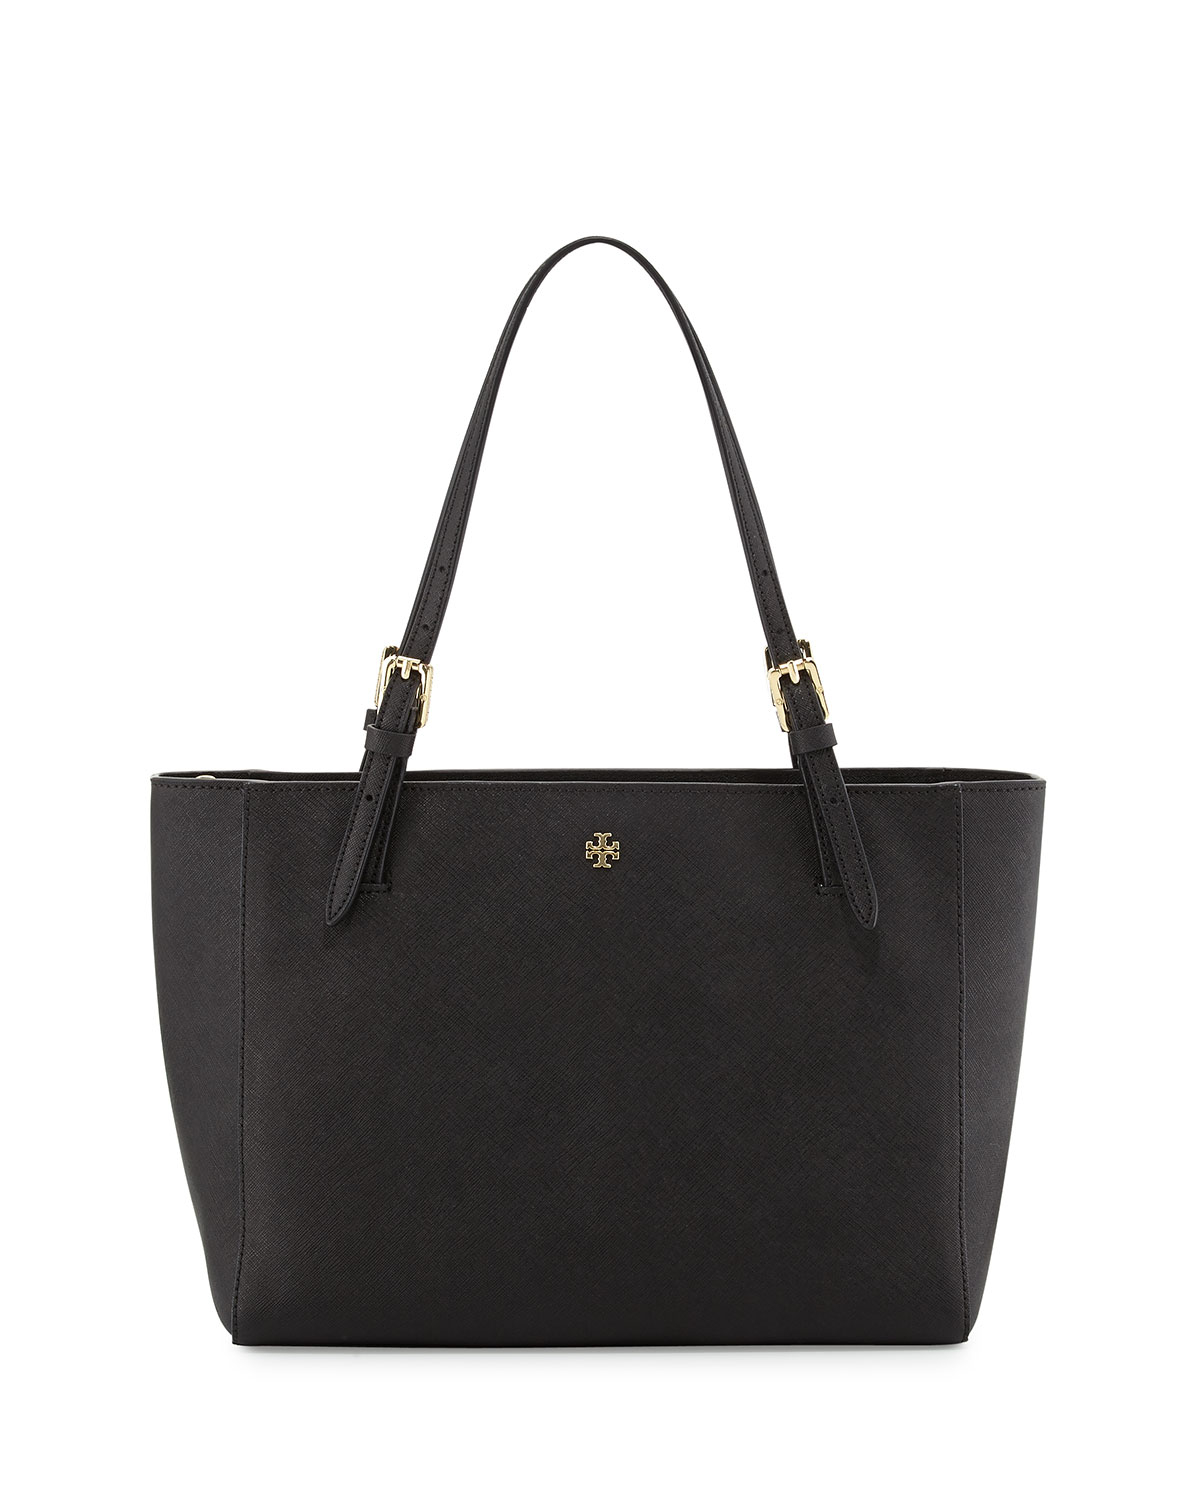 Tory burch York Small Saffiano Tote Bag in Black